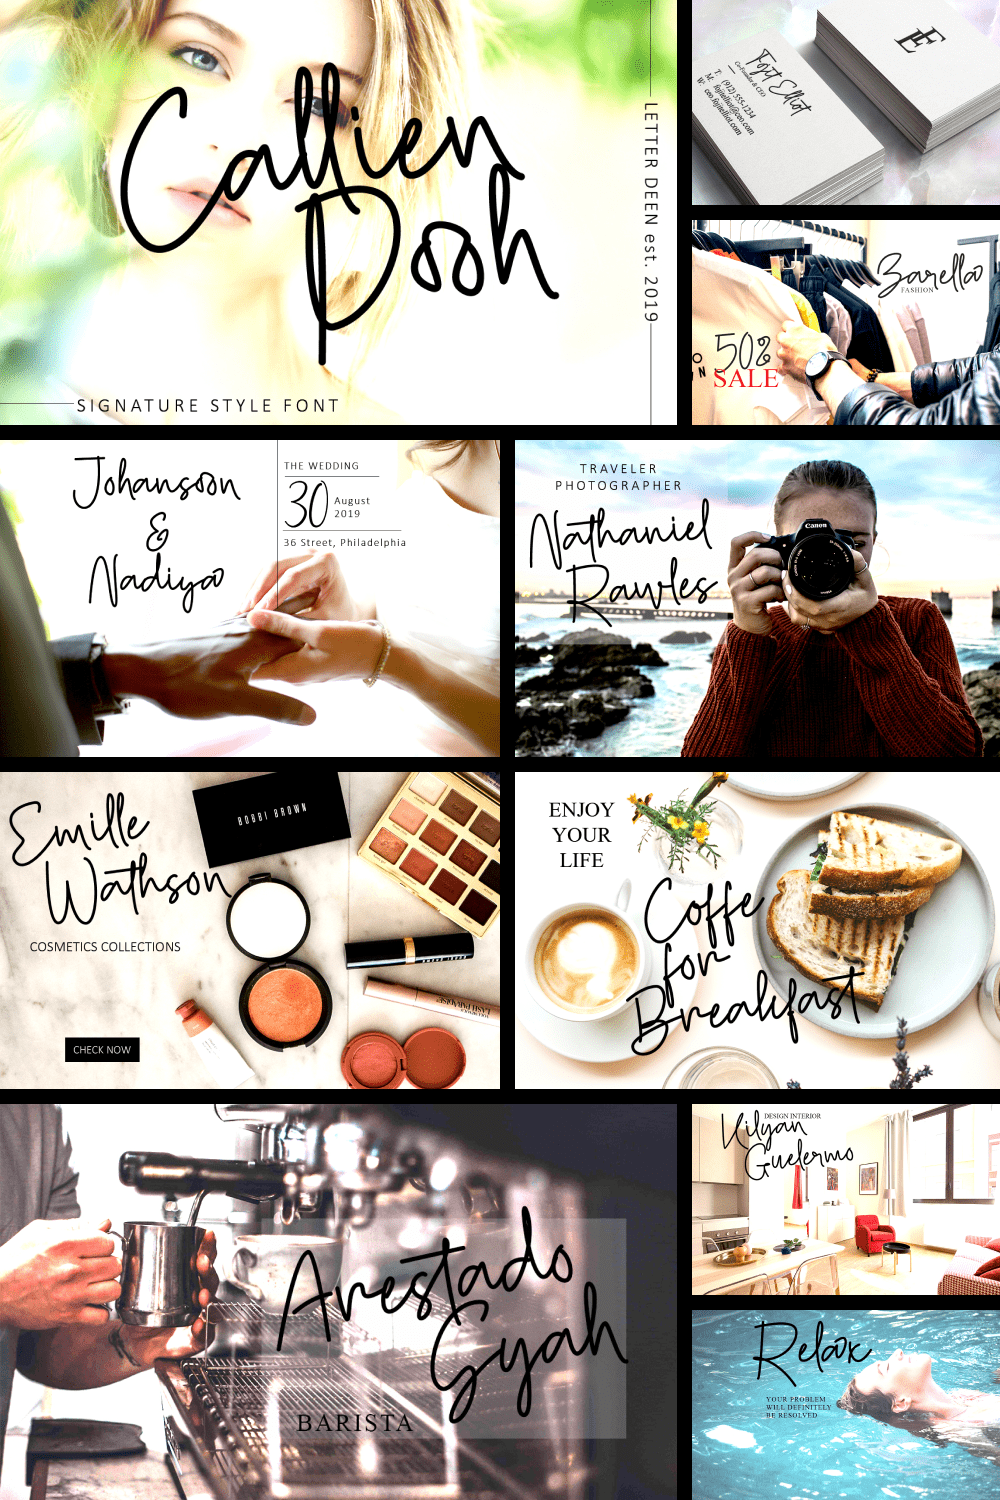 Callien Pooh is a signature font, with sweet touches and beautiful curves on each letter. This font is great for your next creative project.